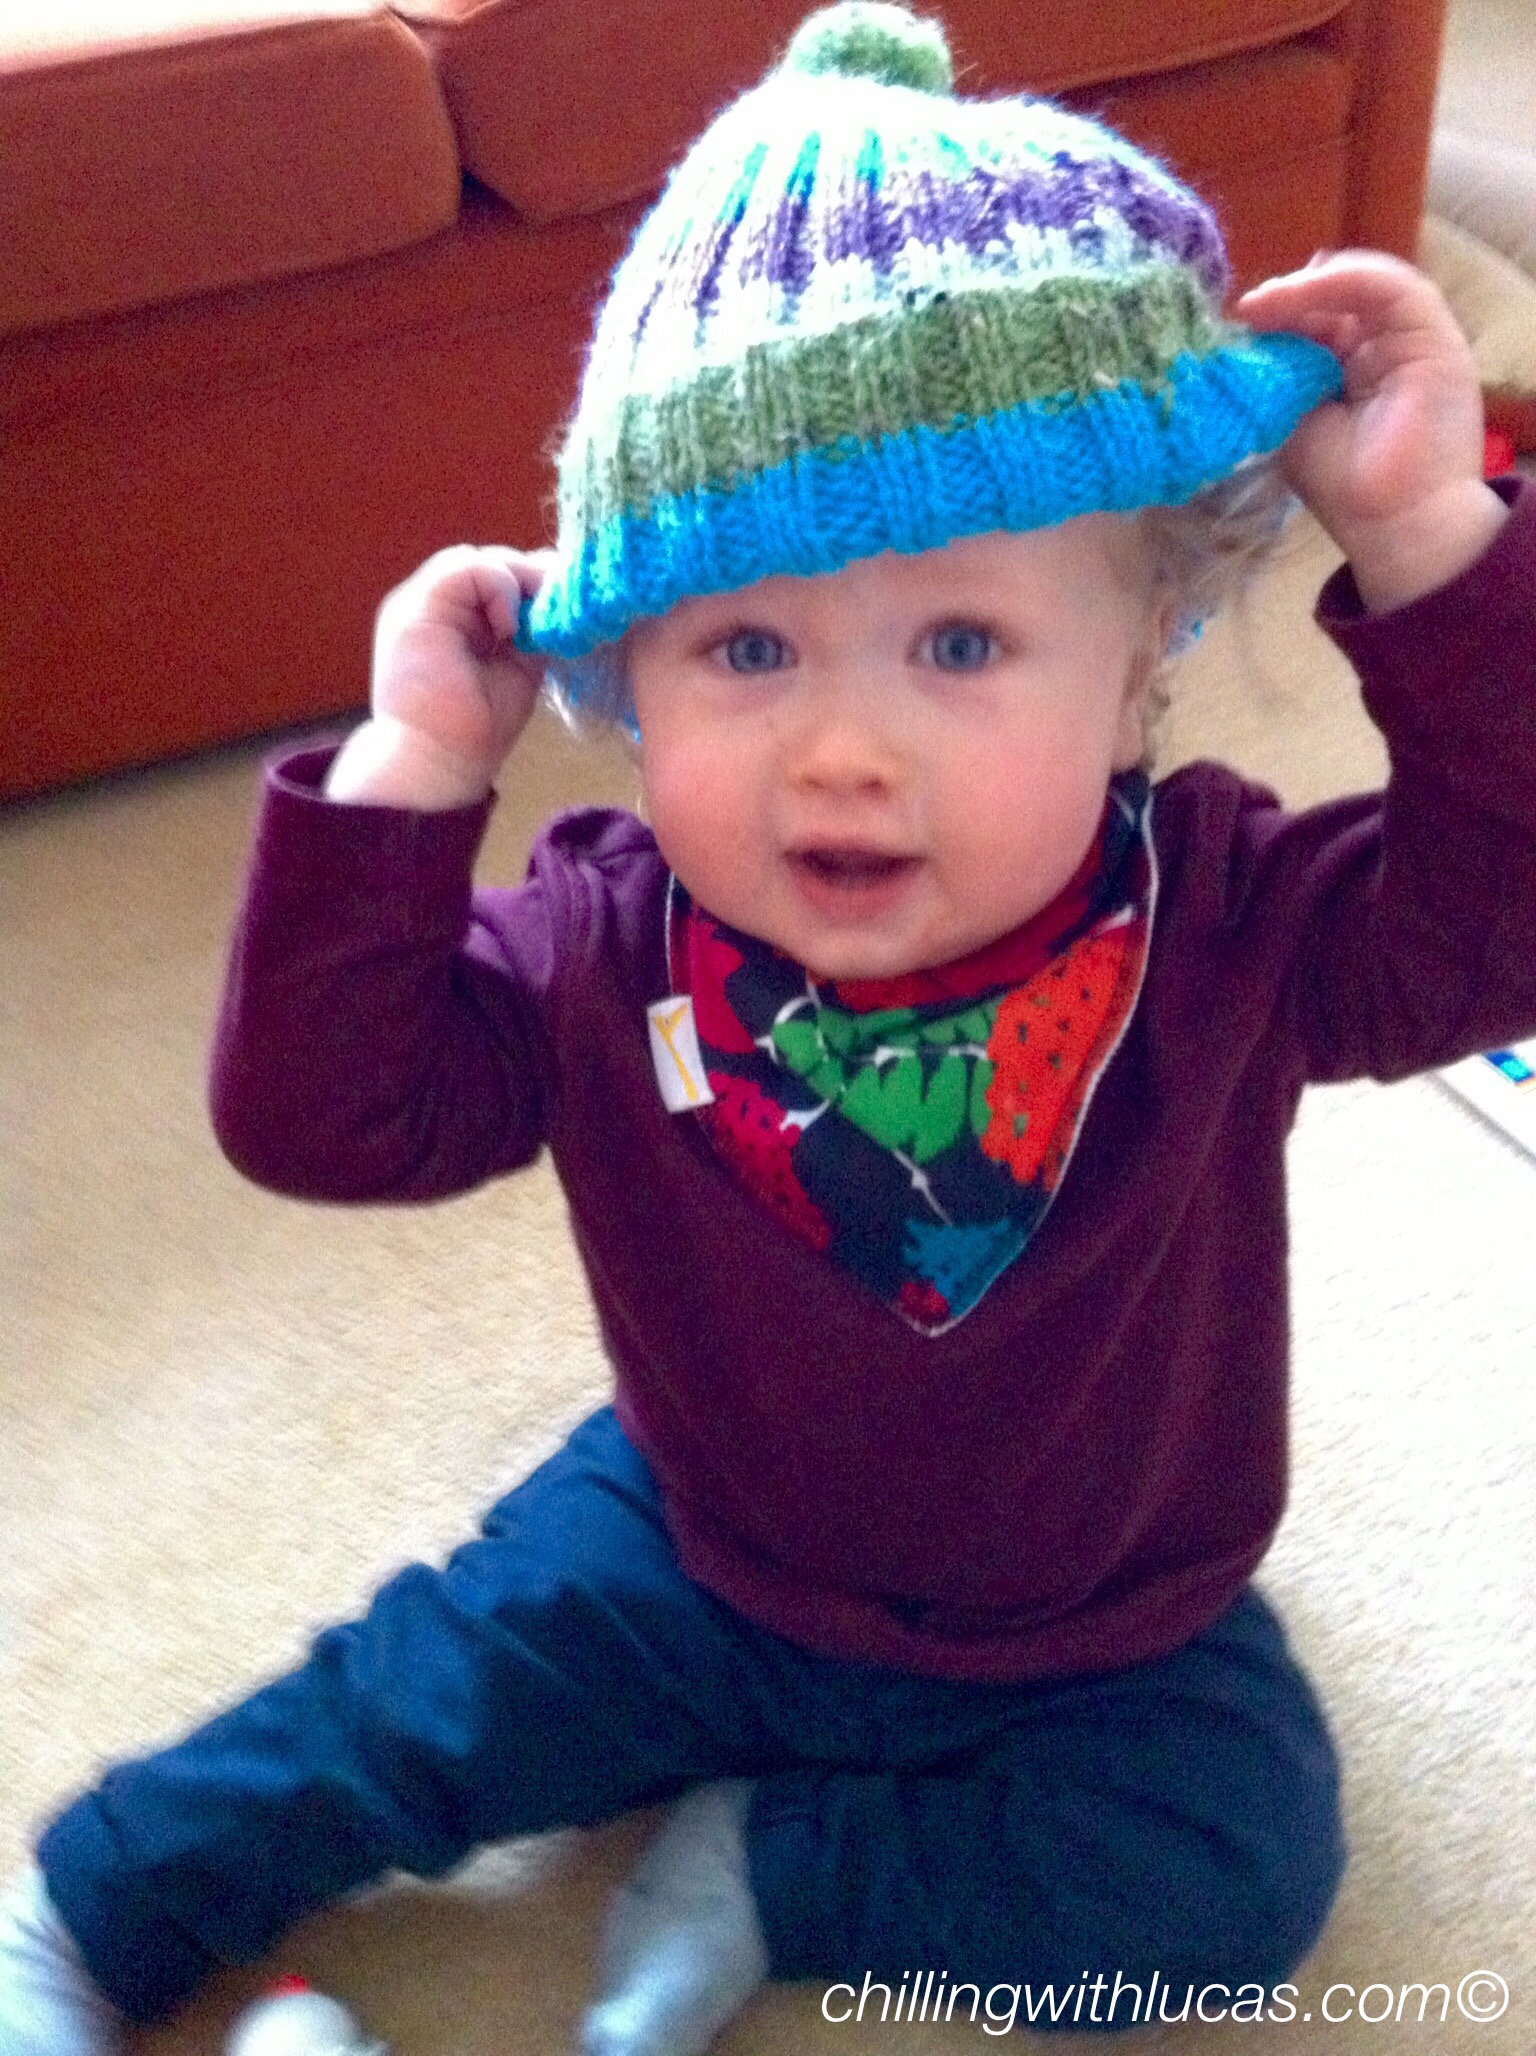 Lucas wearing a multicoloured funky giraffe bib, knitted hat, maroon top and navy jeans. He is sat down looking at the camera with his hands stretching his hat